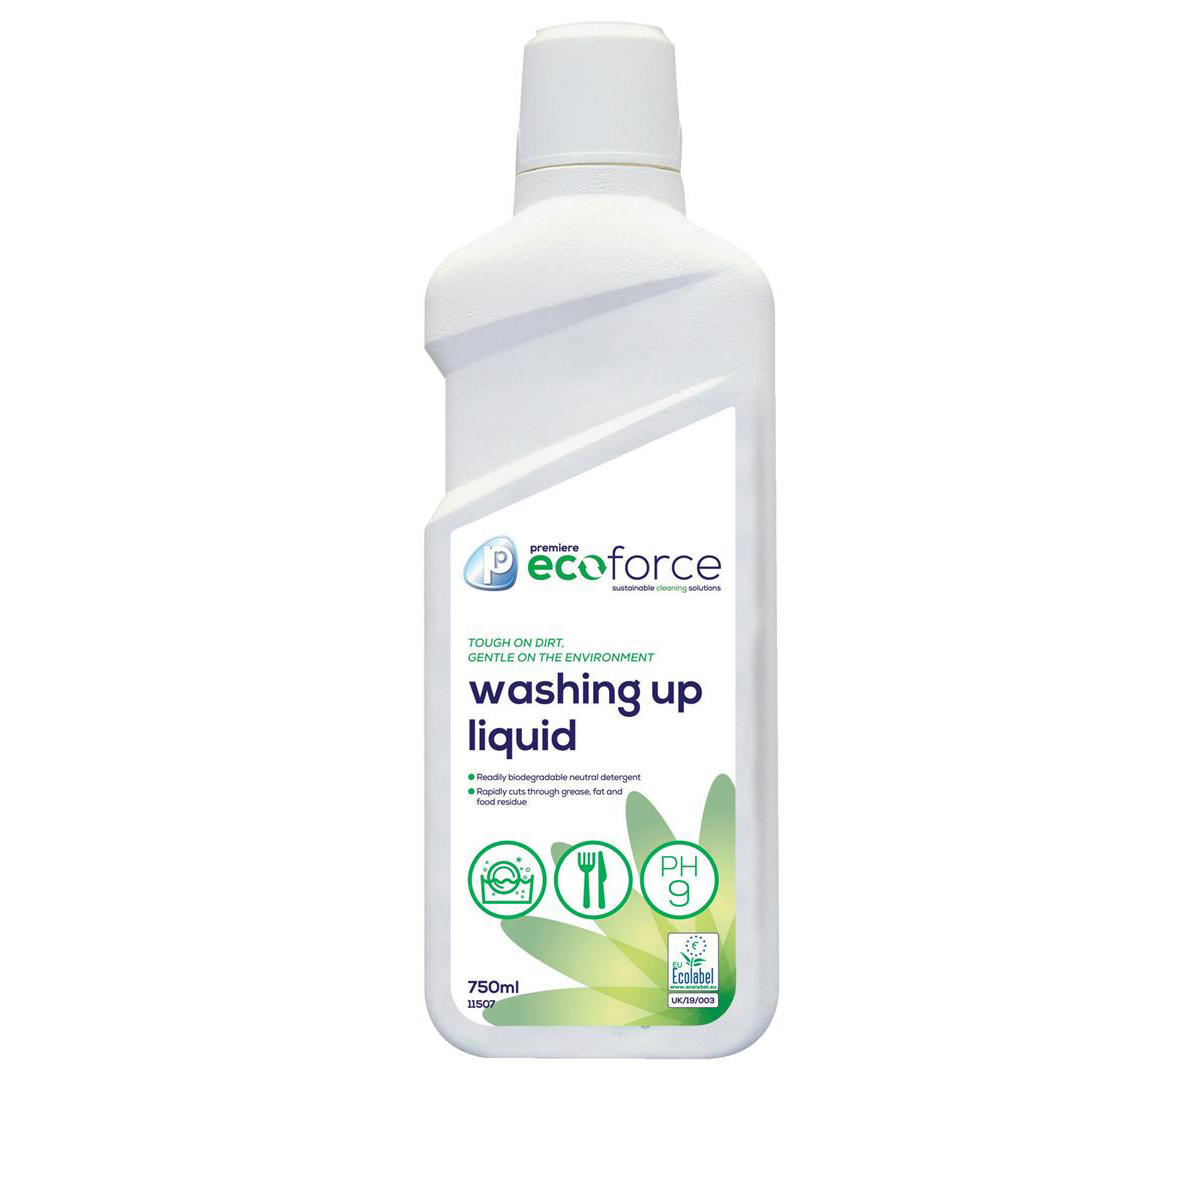 Ecoforce Washing Up Liquid 750ml Ref 11507